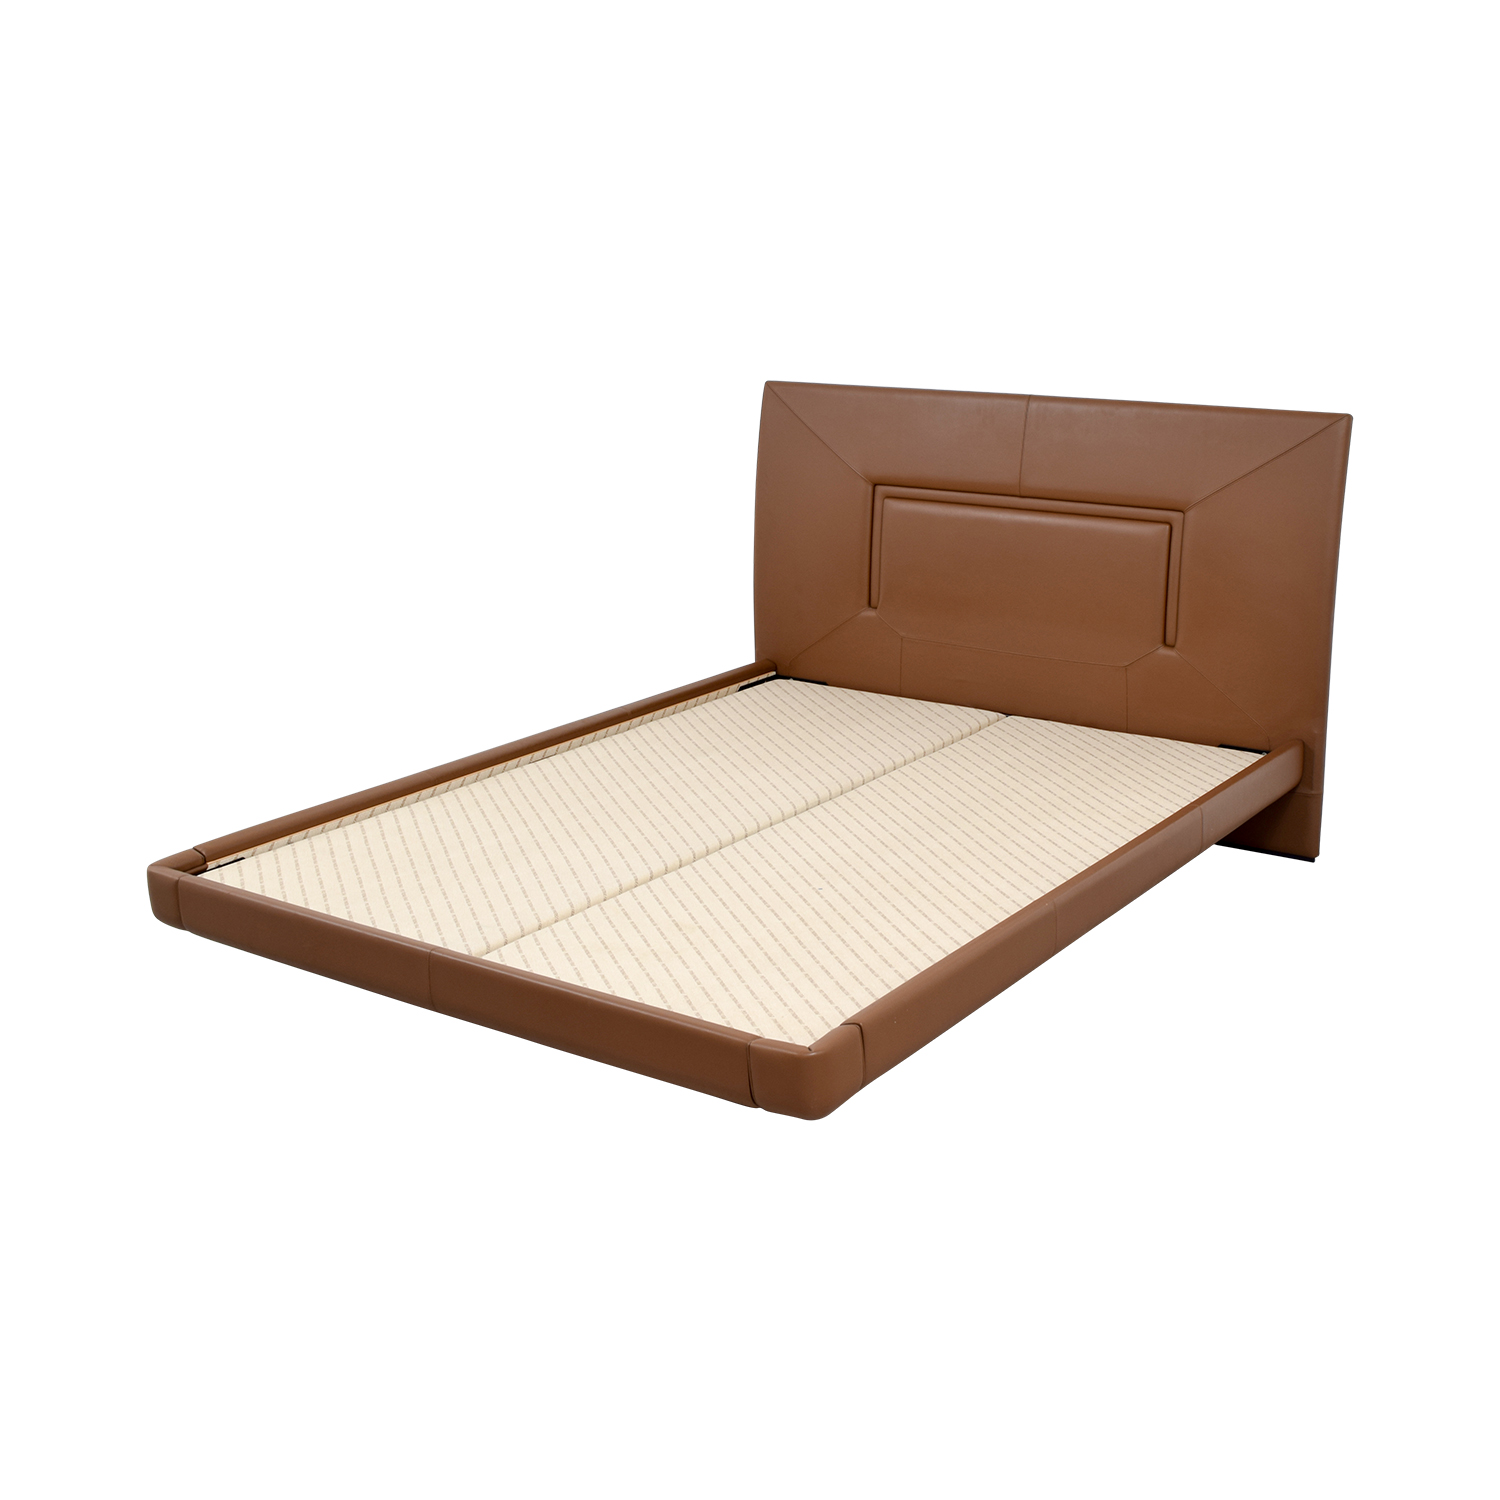 Aurora Uno Aurora Uno Brown Leather Queen Bed Frame nj